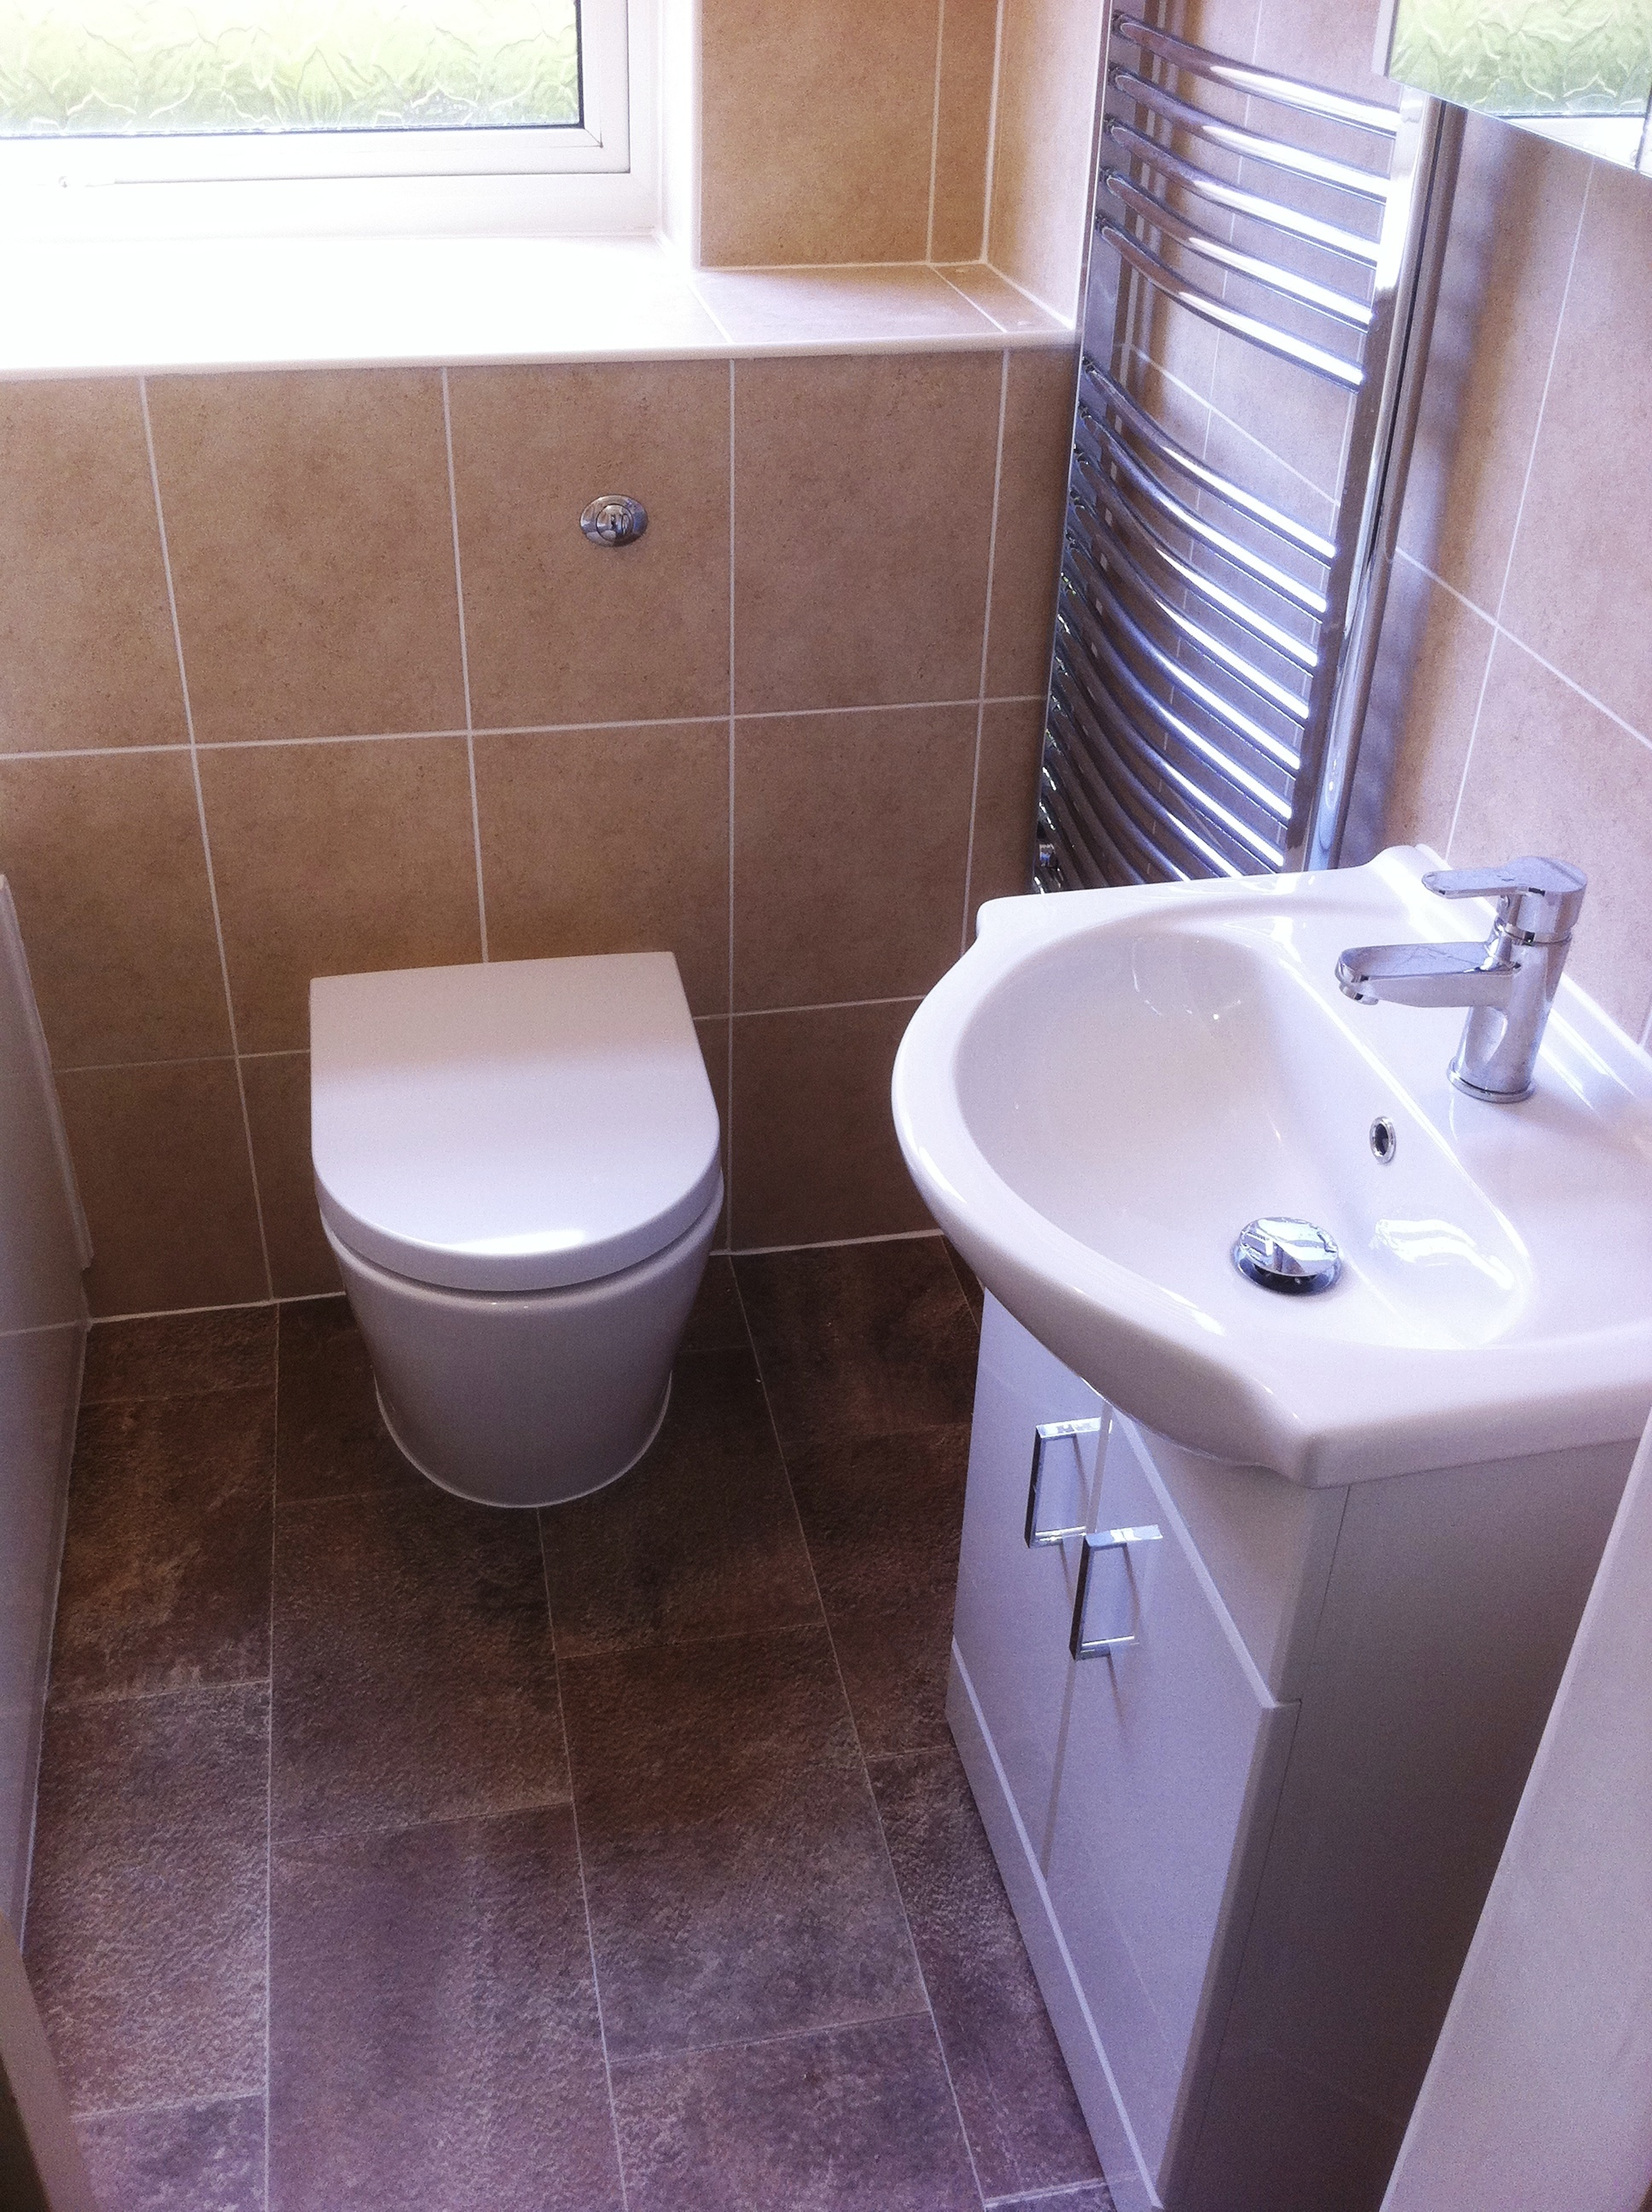 Bespoke Built-in Toilet & Cistern.